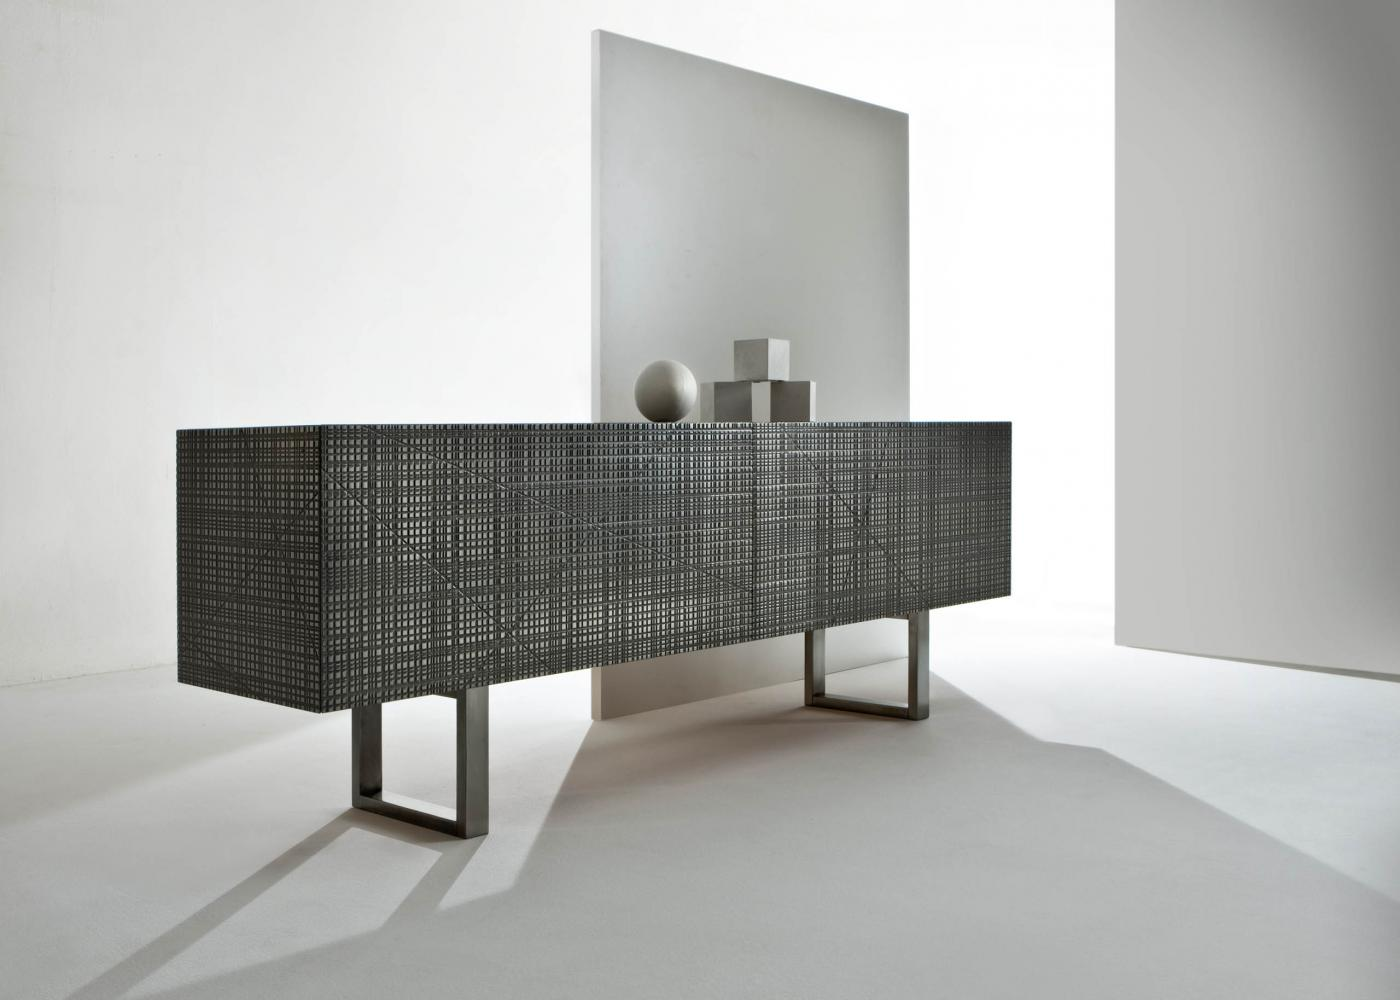 BD 91 is a Low sideboard with Maxima surface in tin liquid metal finish